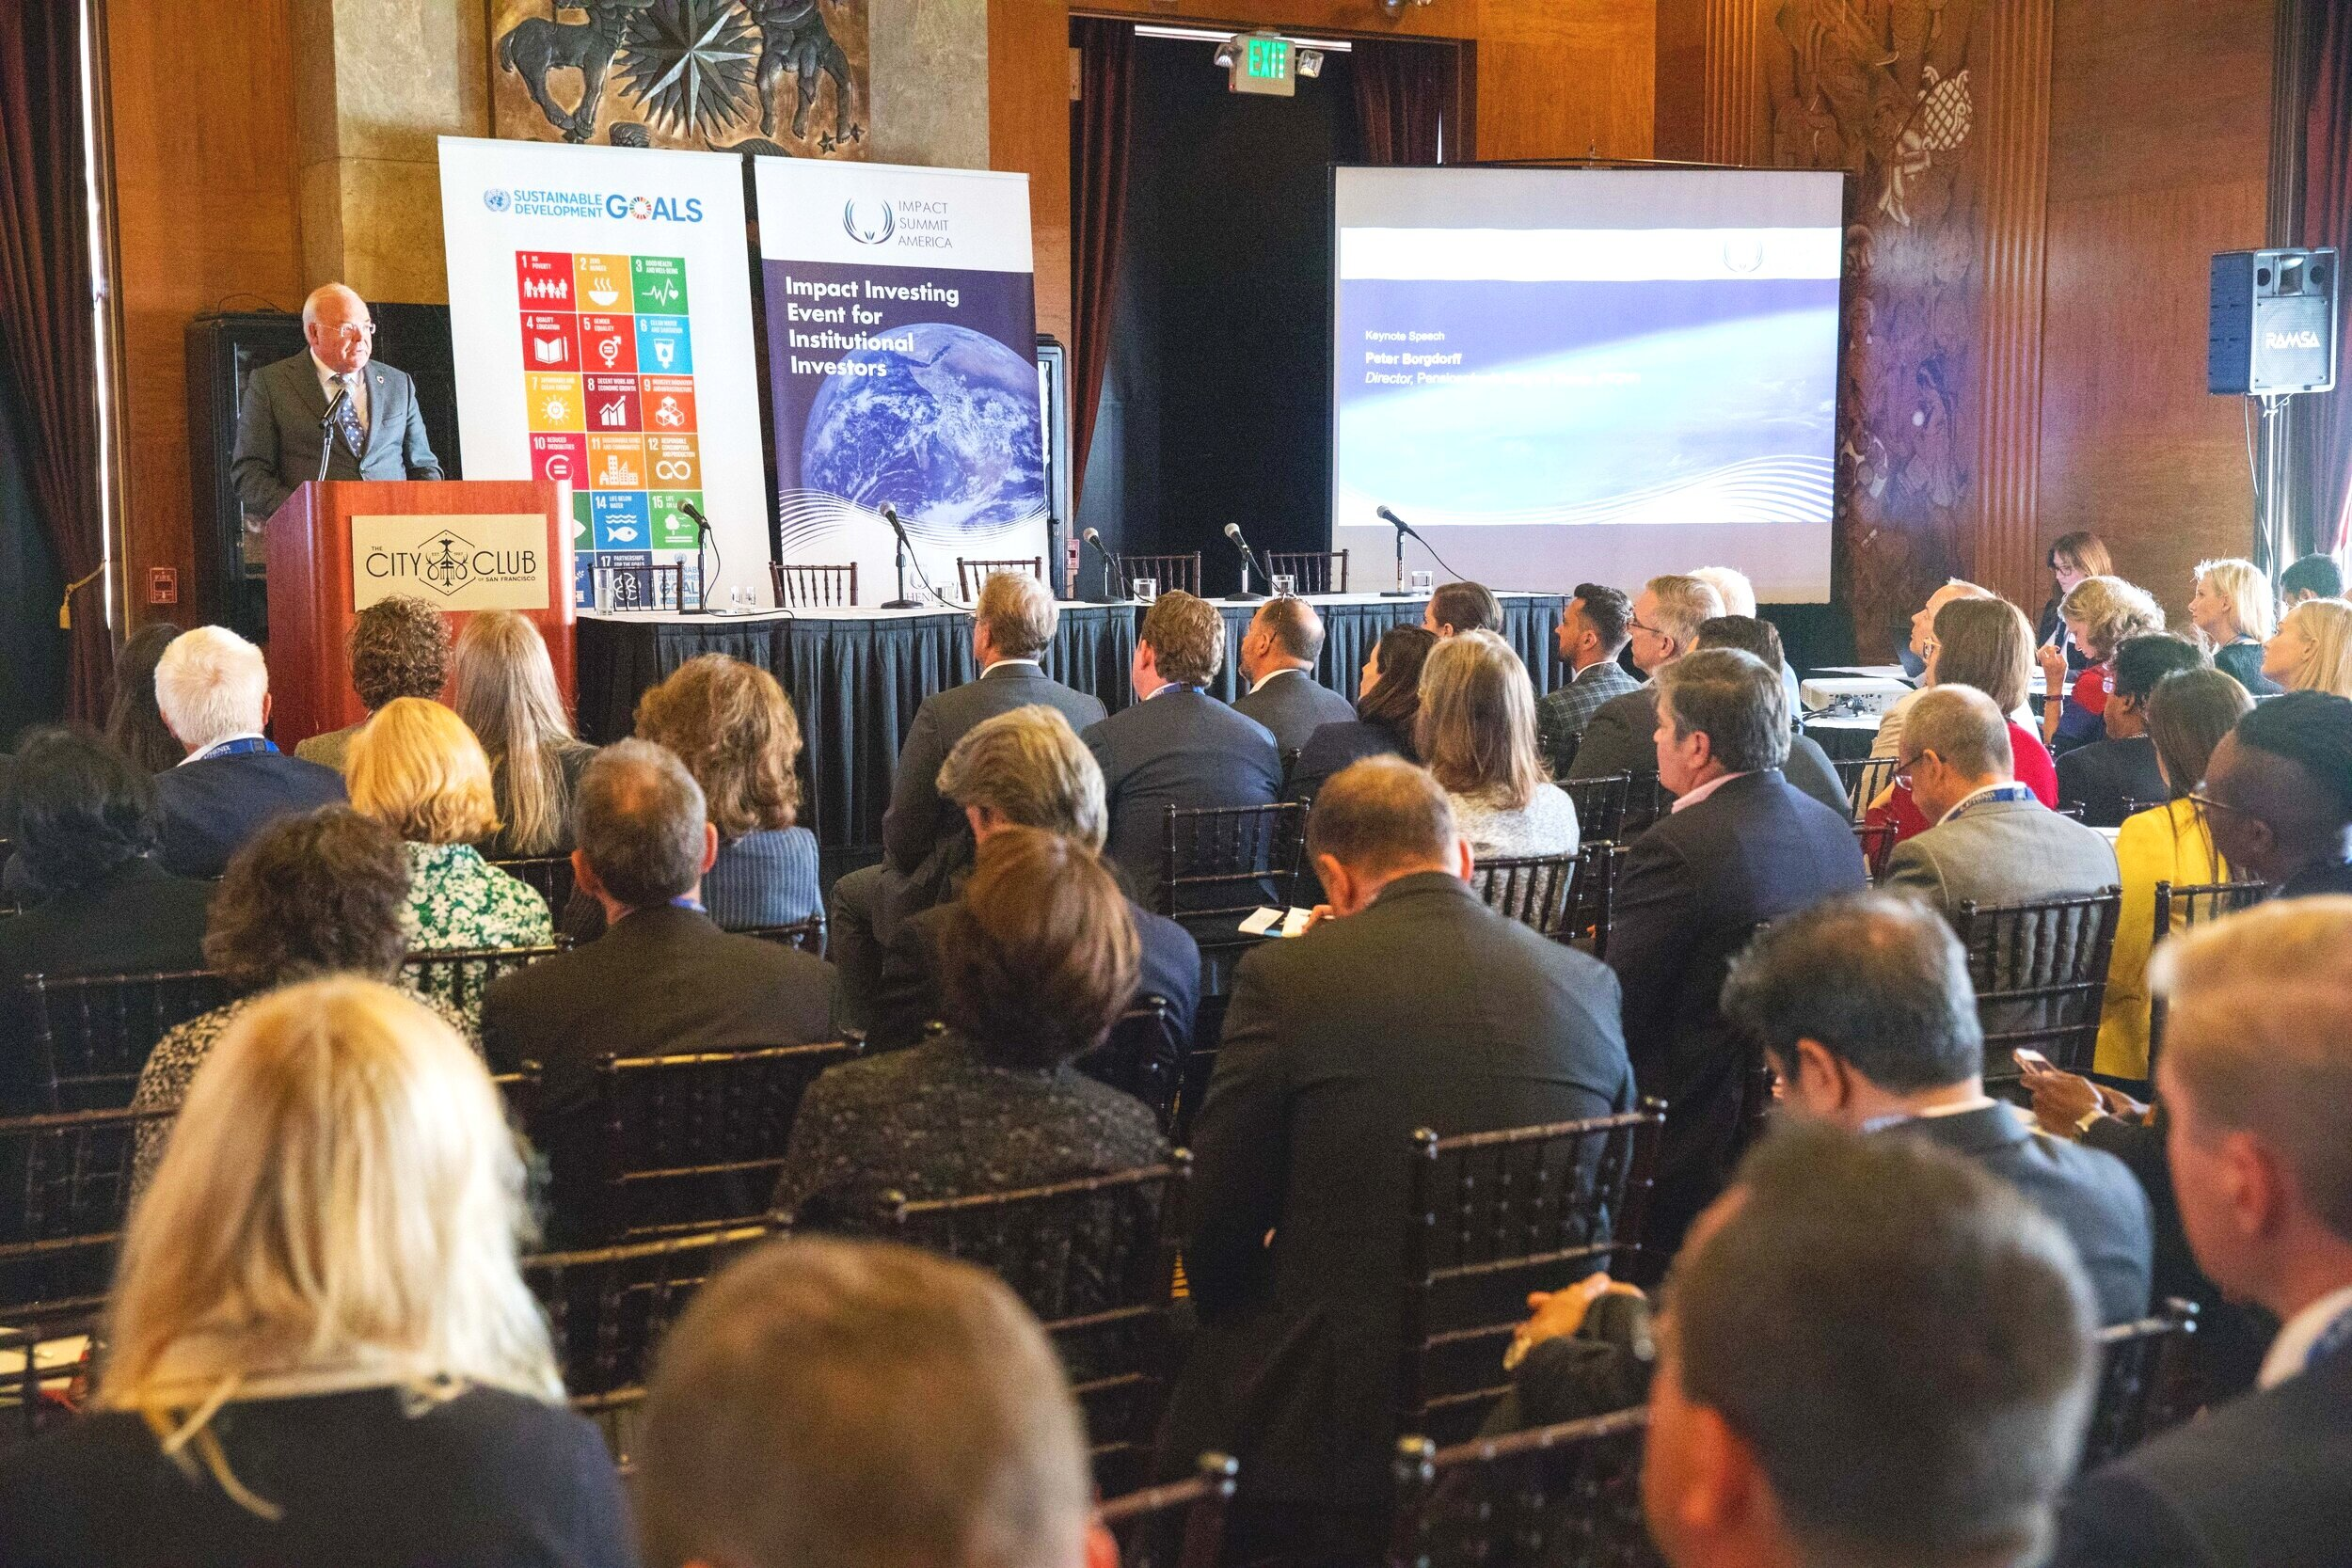 IMPACT SUMMIT AMERICA 2018  - IMPACT INVESTING EVENT FOR INSTITUTIONAL INVESTORS Tuesday 11 September 2018 | 12:00 to 19:00 PT | The City Club of San Francisco, CA